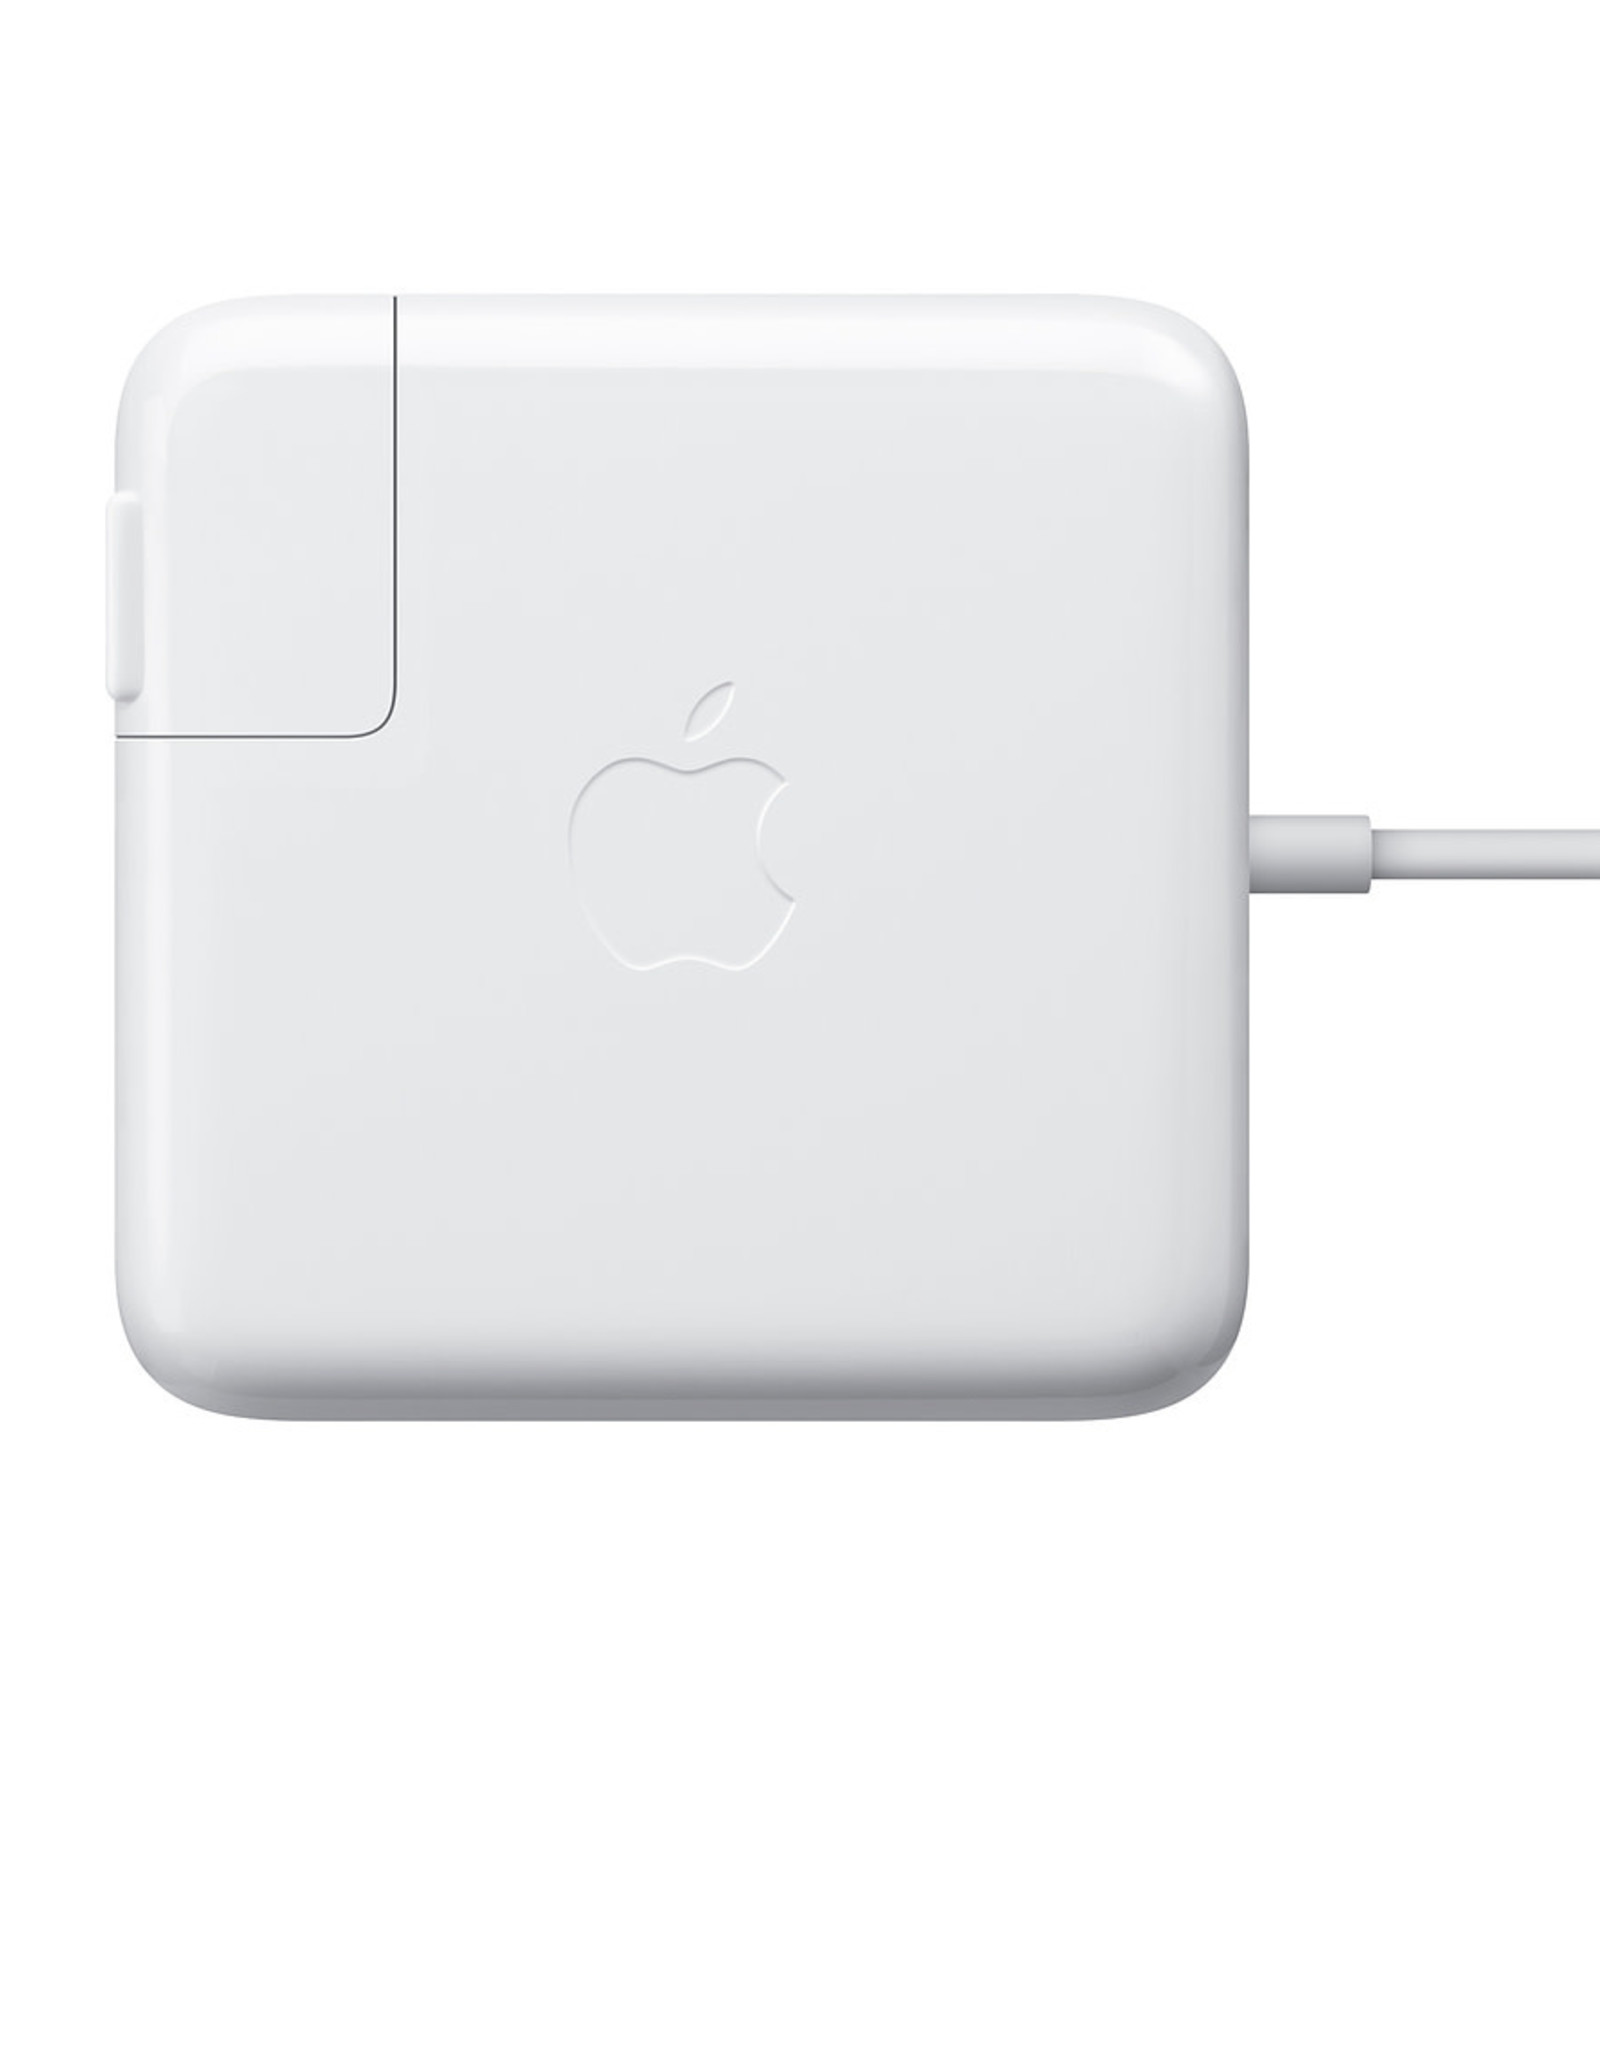 60w Magsafe Power Adapter for MacBook